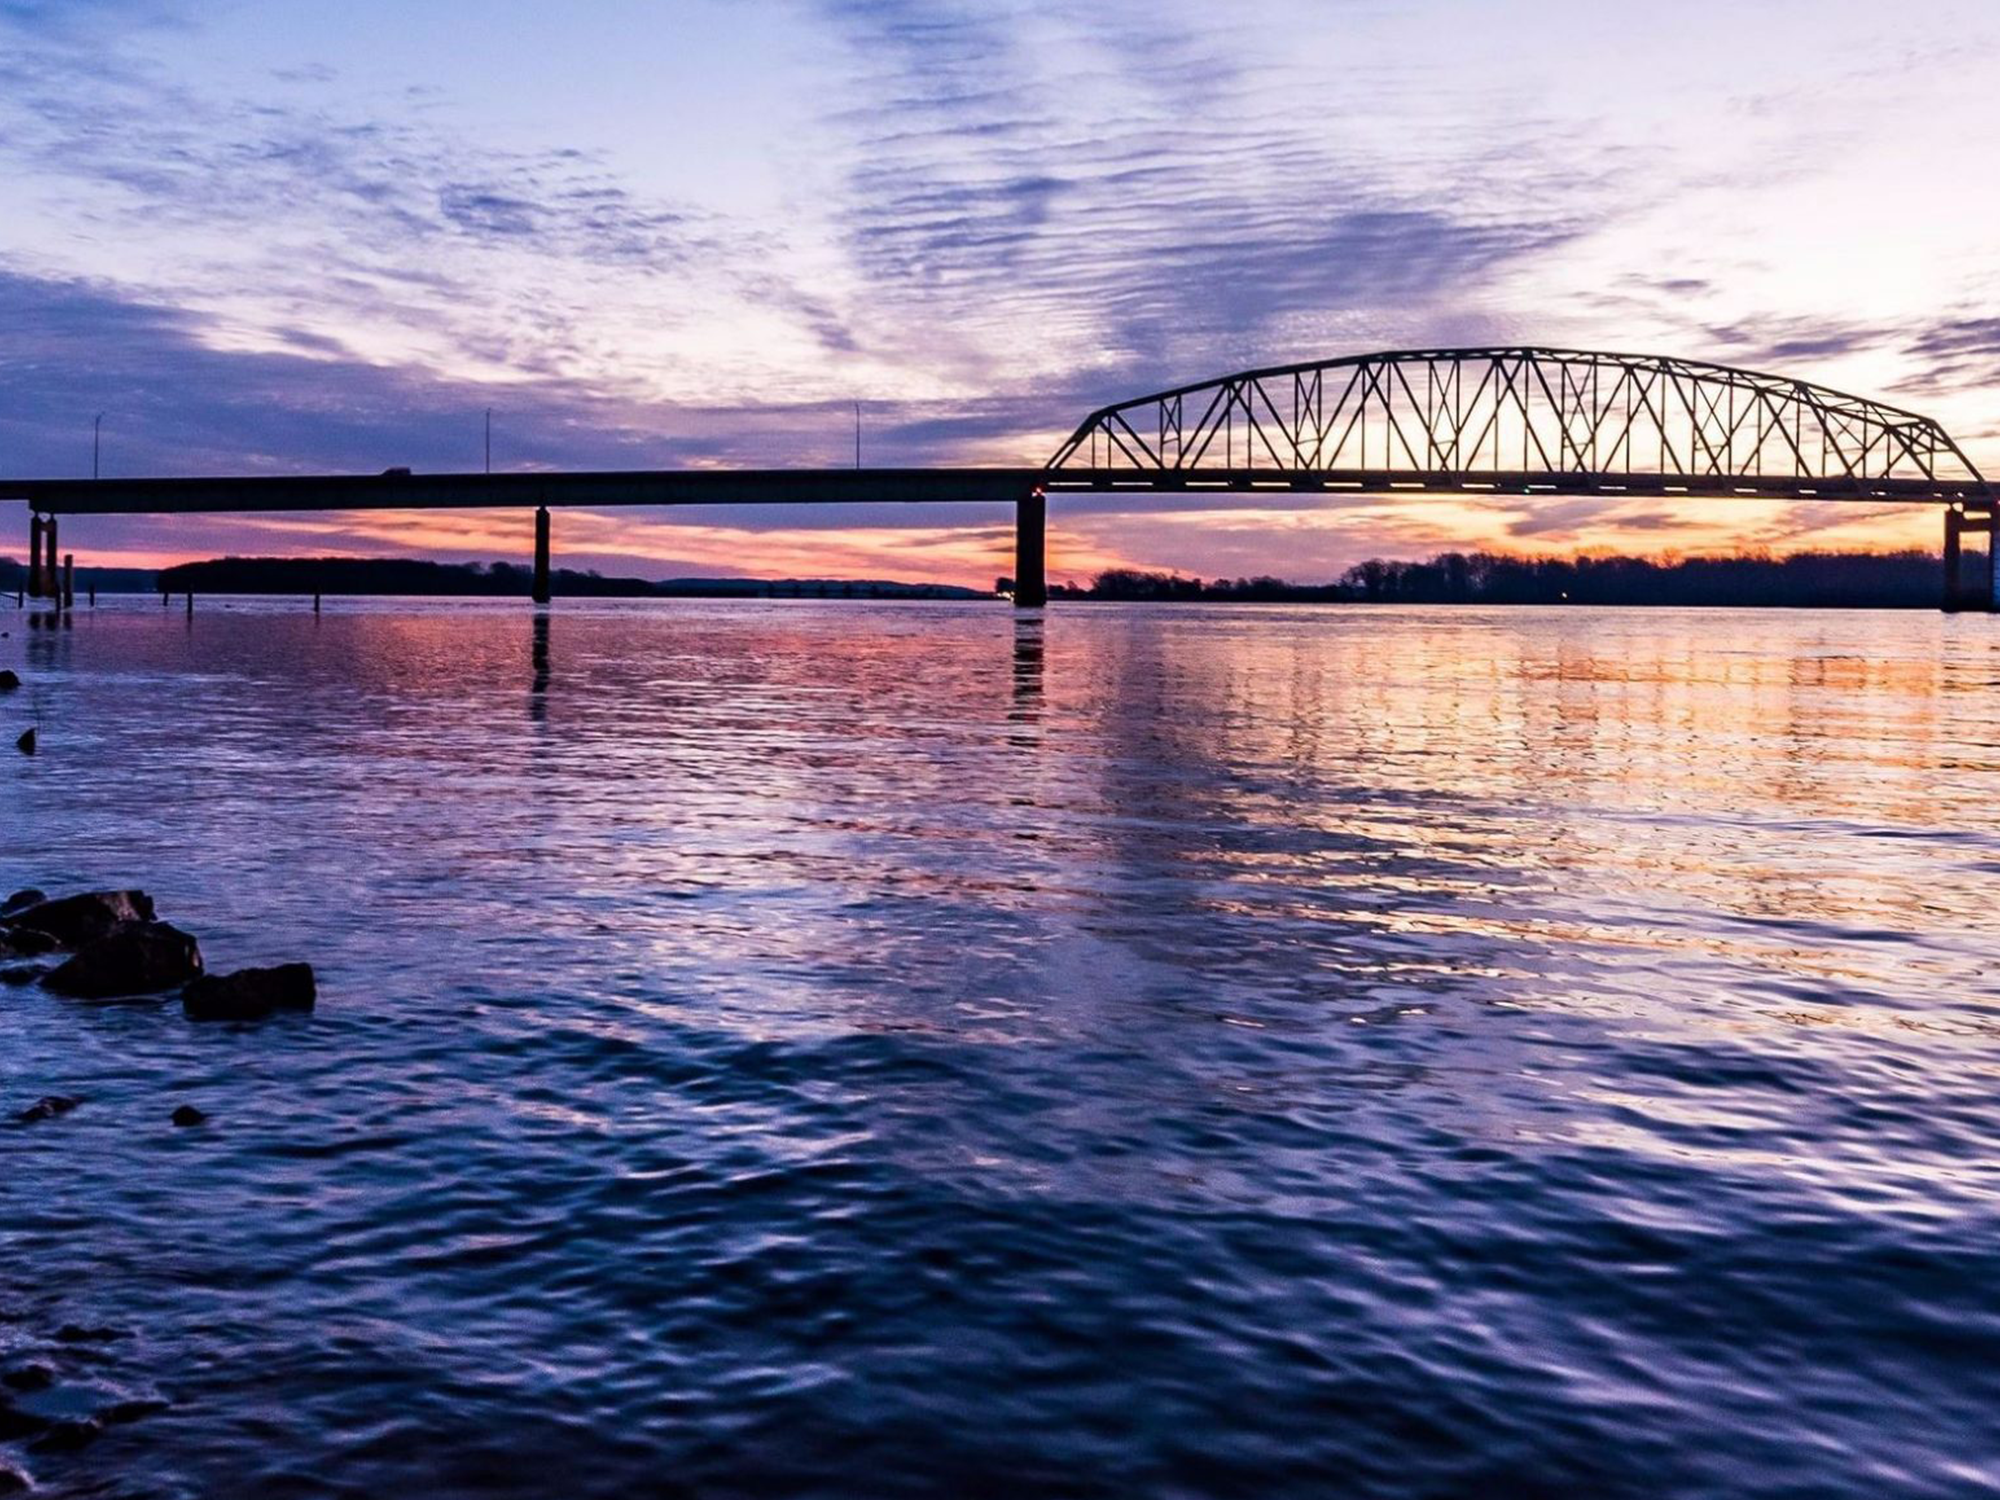 mississippi river with norbert becky bridge